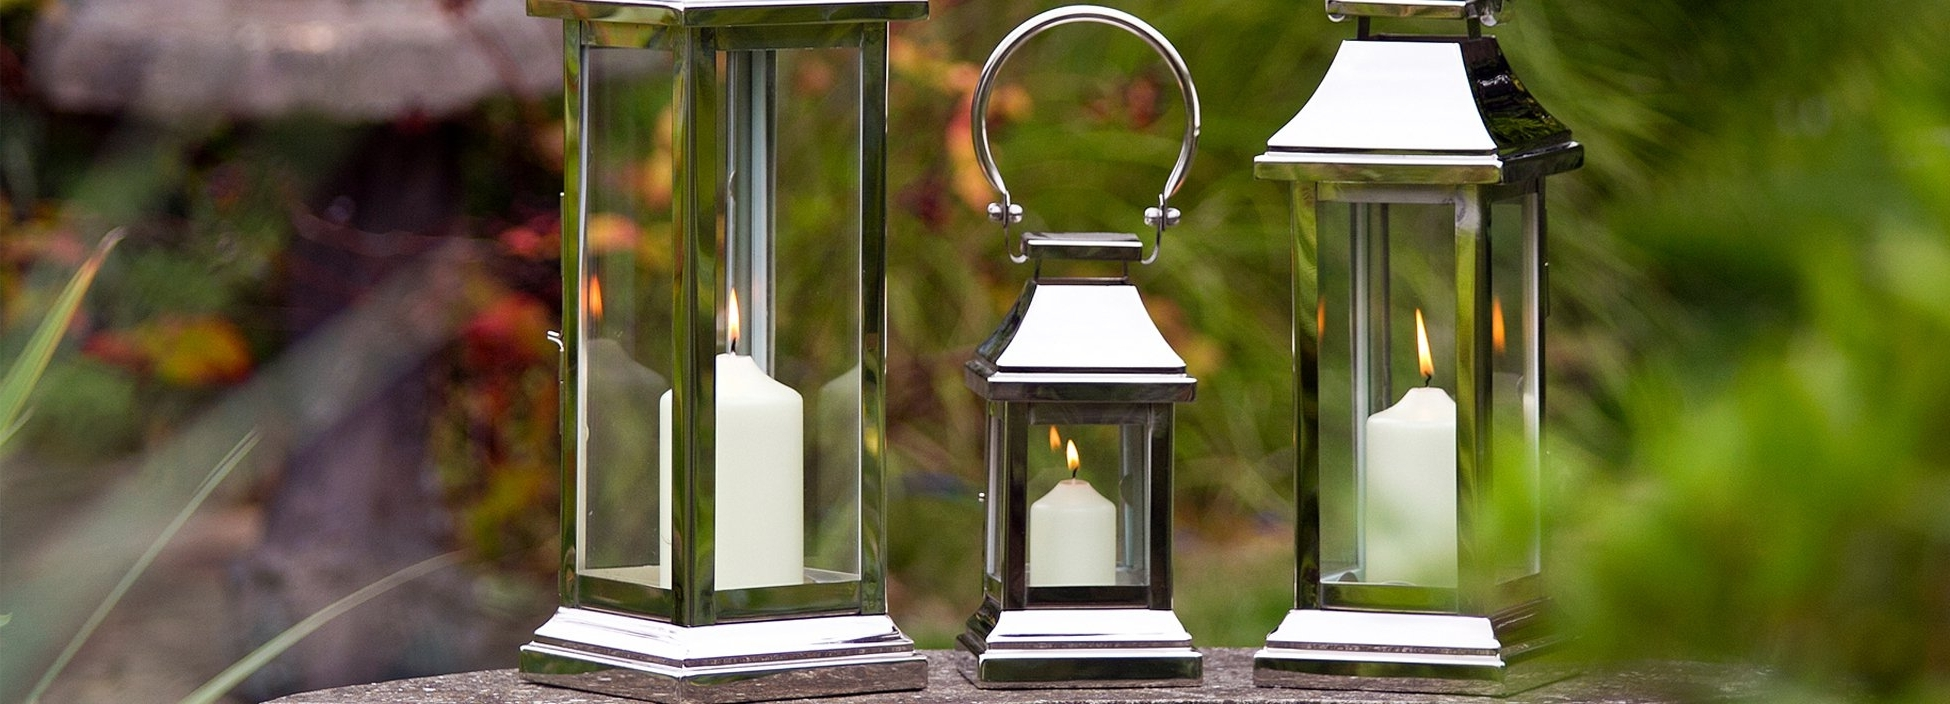 Outdoor Lanterns And Candles Regarding 2018 Indoor Candle Lanterns & Garden Lanterns (View 20 of 20)